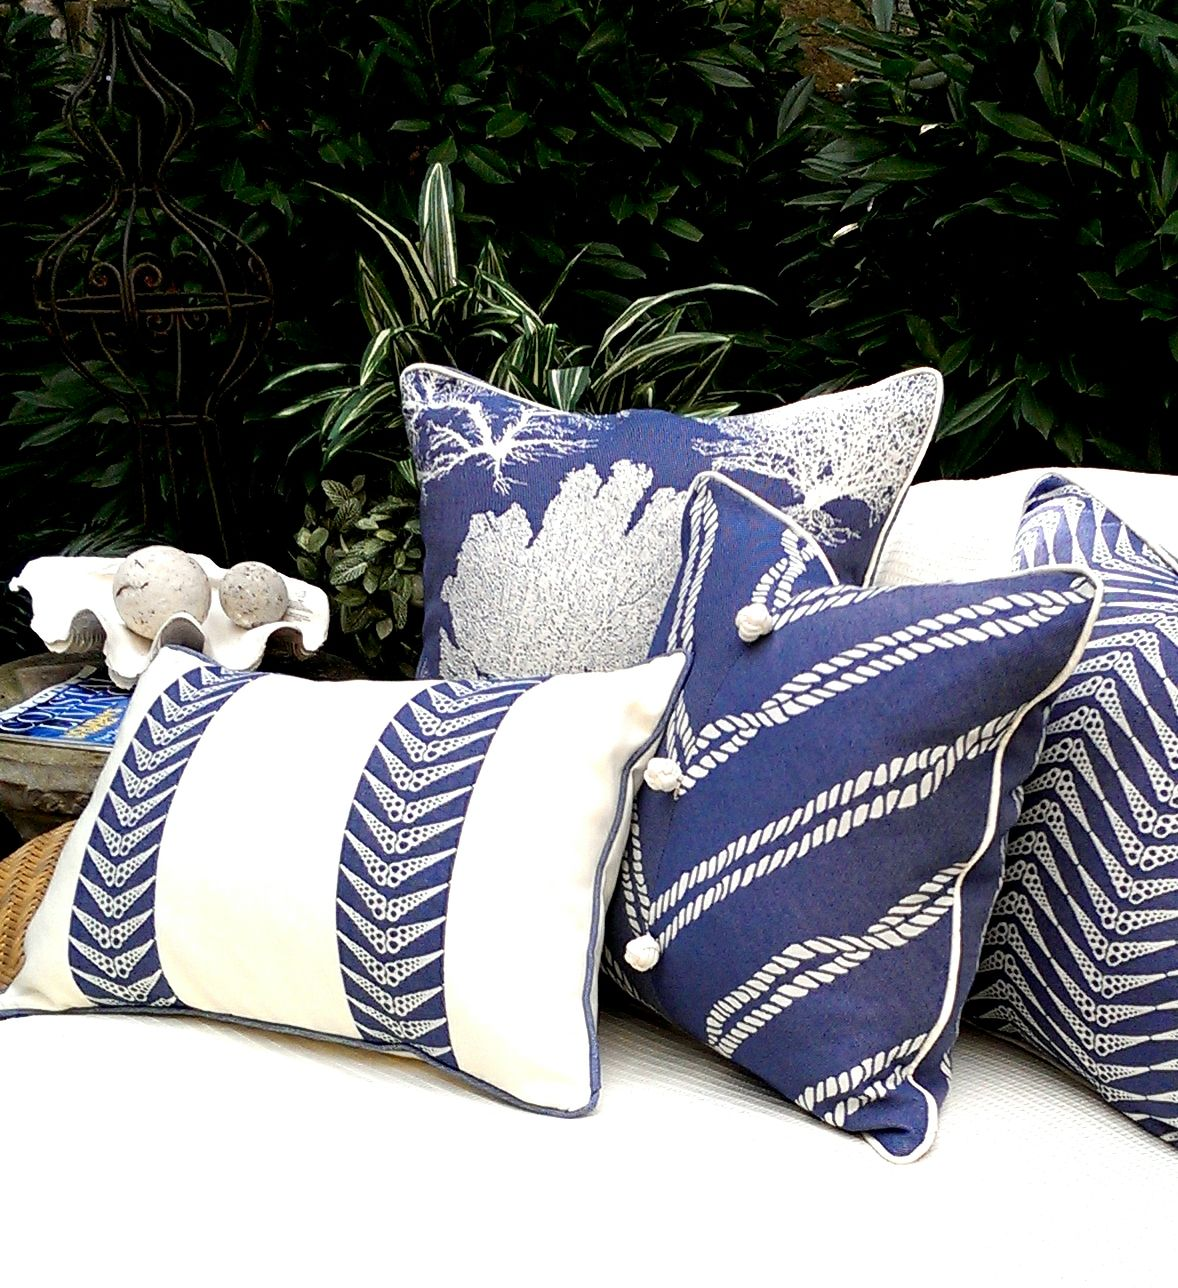 buy throw com free blue burlap style cases pillows outdoor wholesale word w and on shipping plant aliexpress home cushion pillow decor beach get vacation chinese